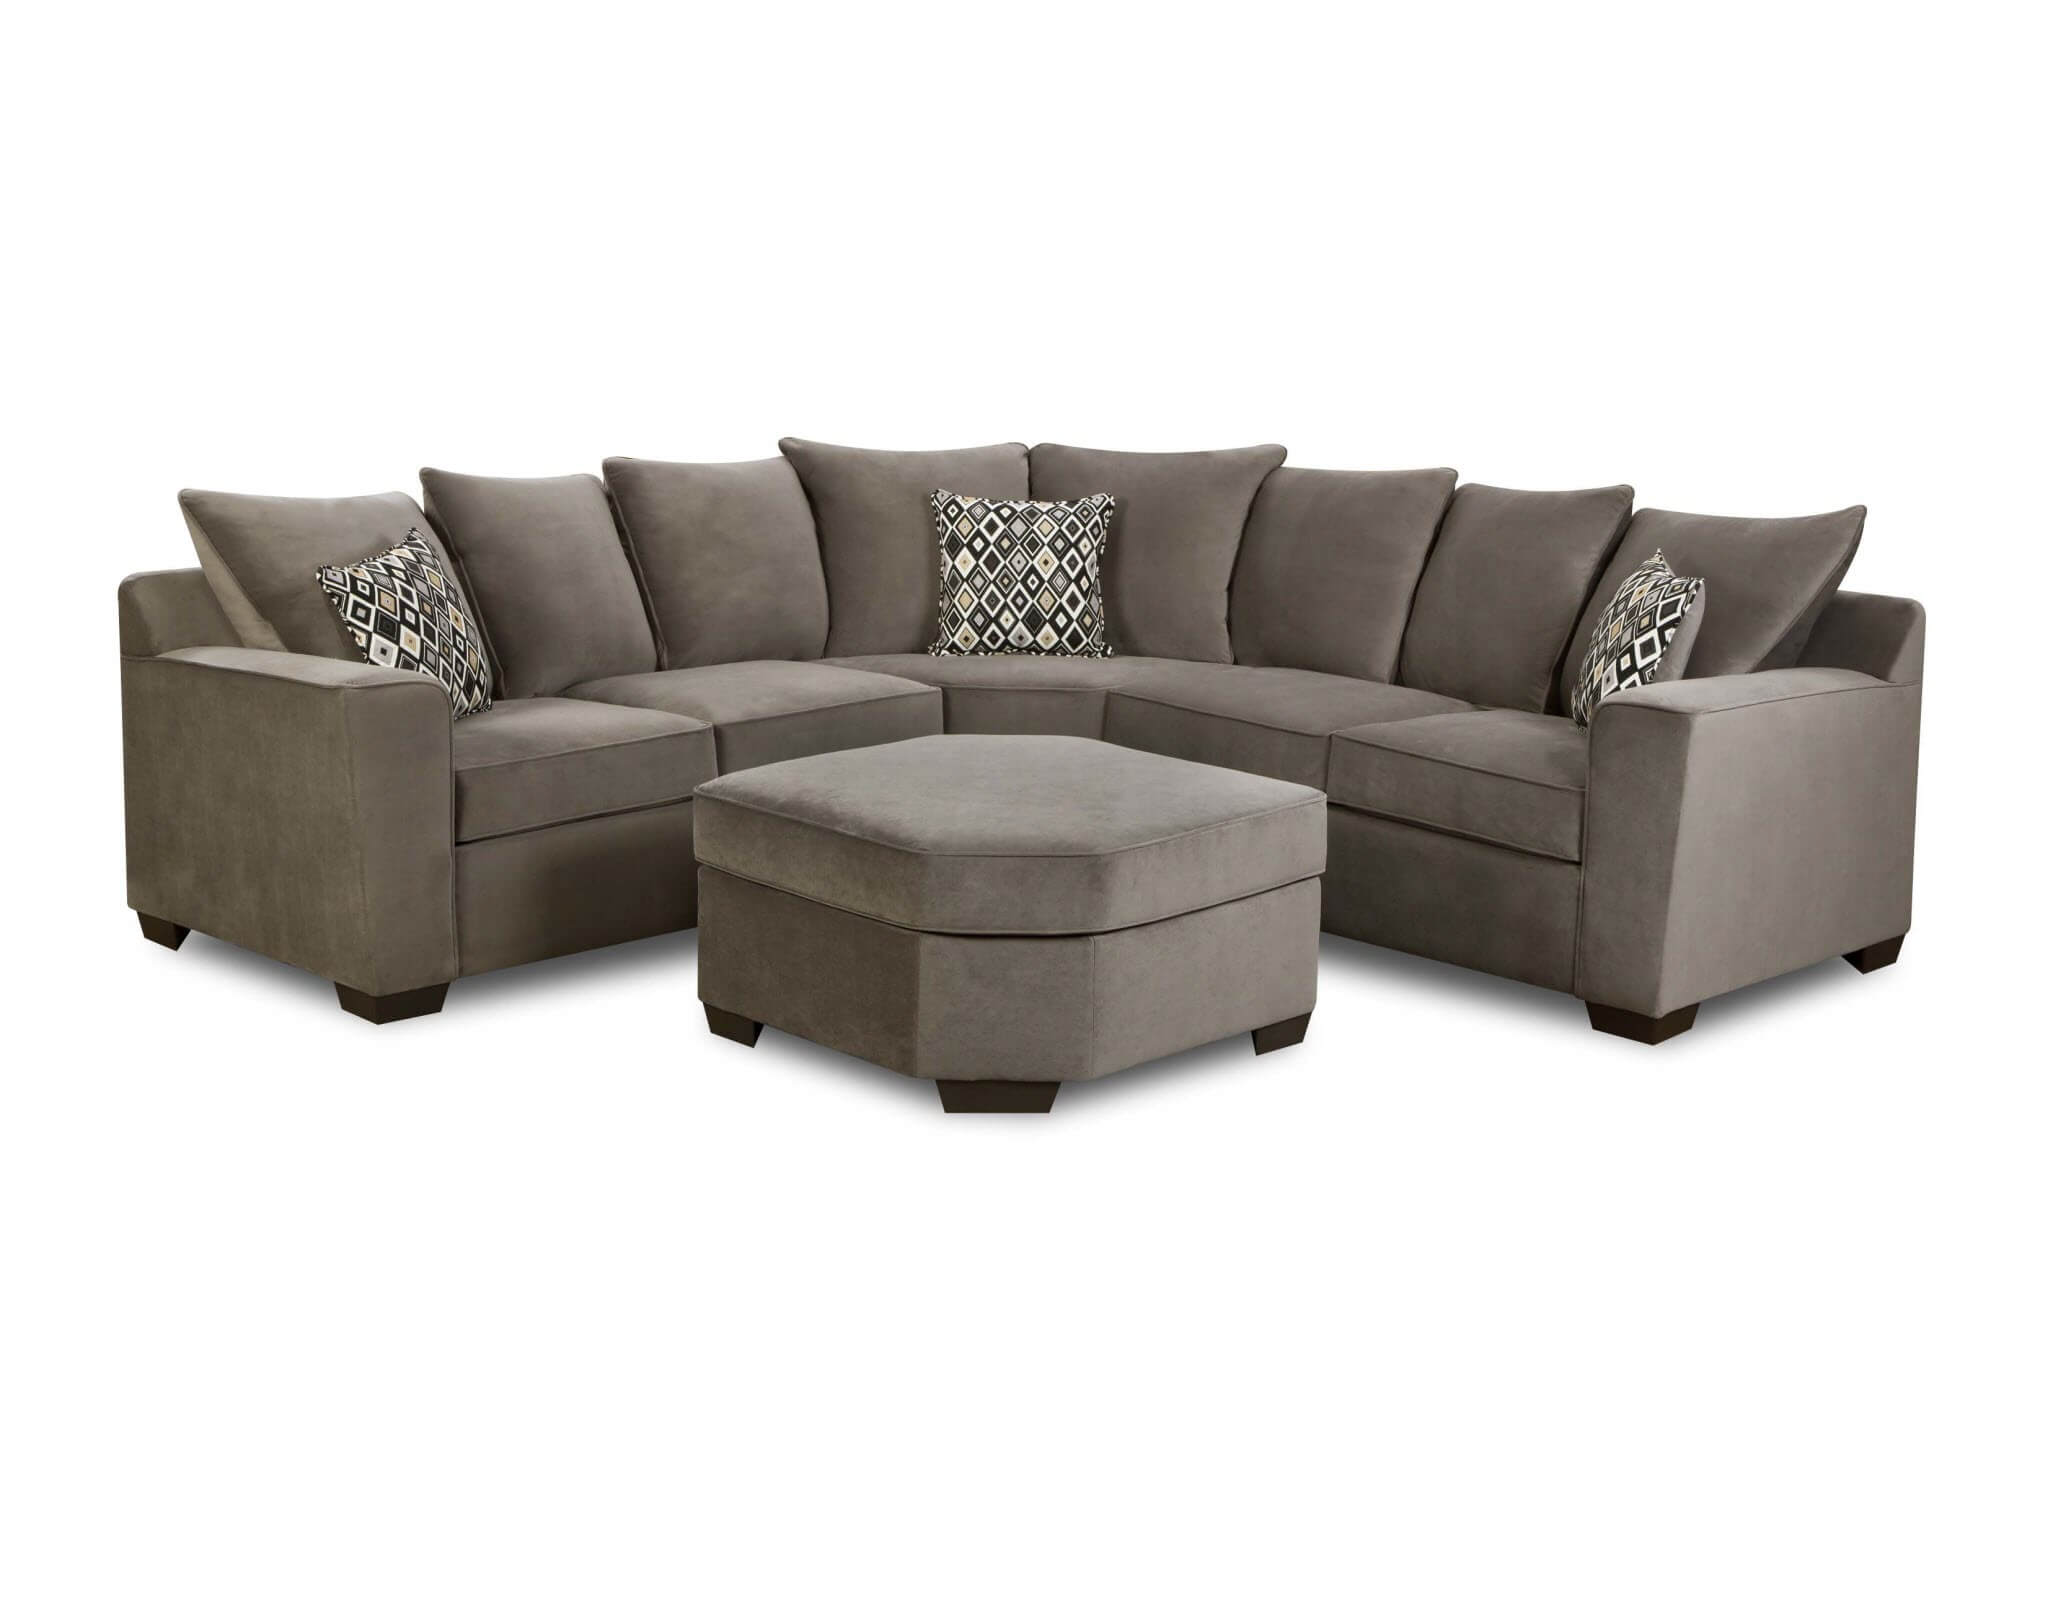 The Recliners Roxanne Sofasectional Sofas Big Lots Sectional Sofas With Recliners Big Lots